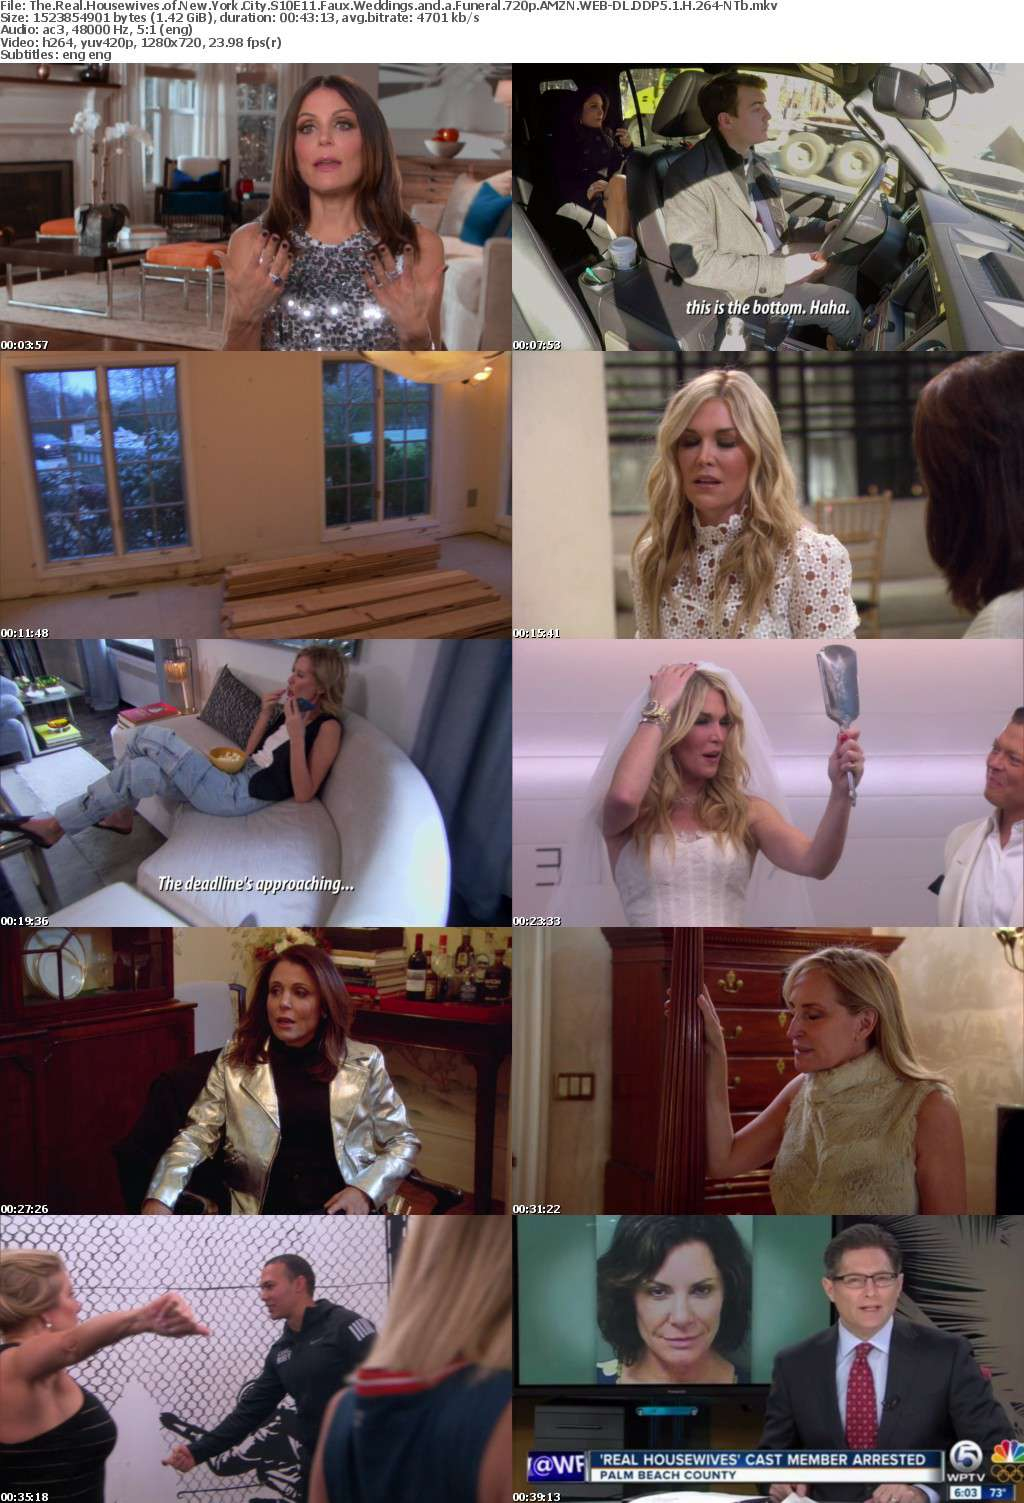 The Real Housewives of New York City S10E11 Faux Weddings and a Funeral 720p AMZN WEB-DL DDP5 1 H 264-NTb